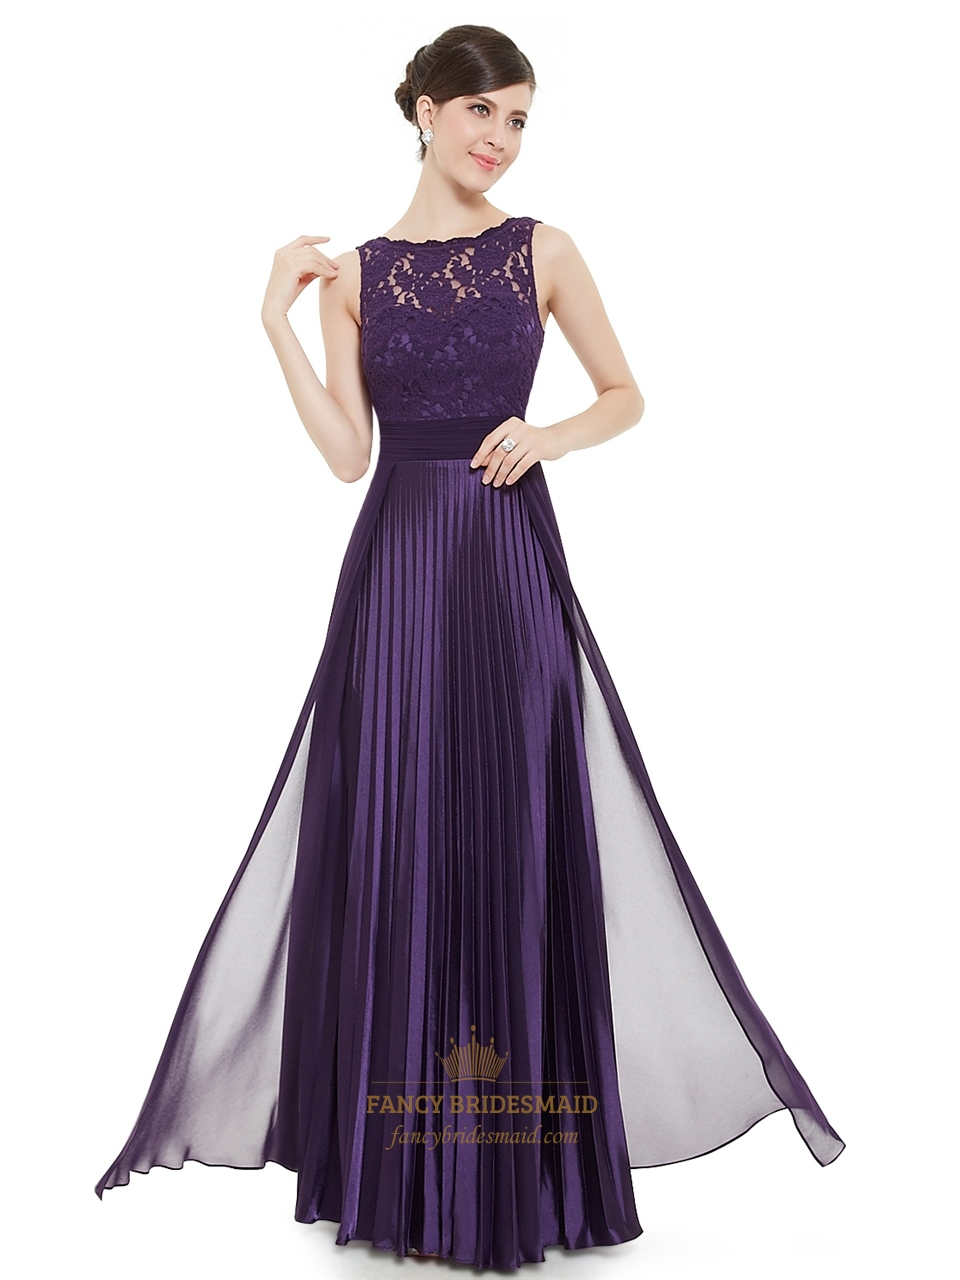 3573174ca802 Eggplant Purple Chiffon Sleeveless Lace Bodice Bridesmaid Dress With Belt  SKU -F597